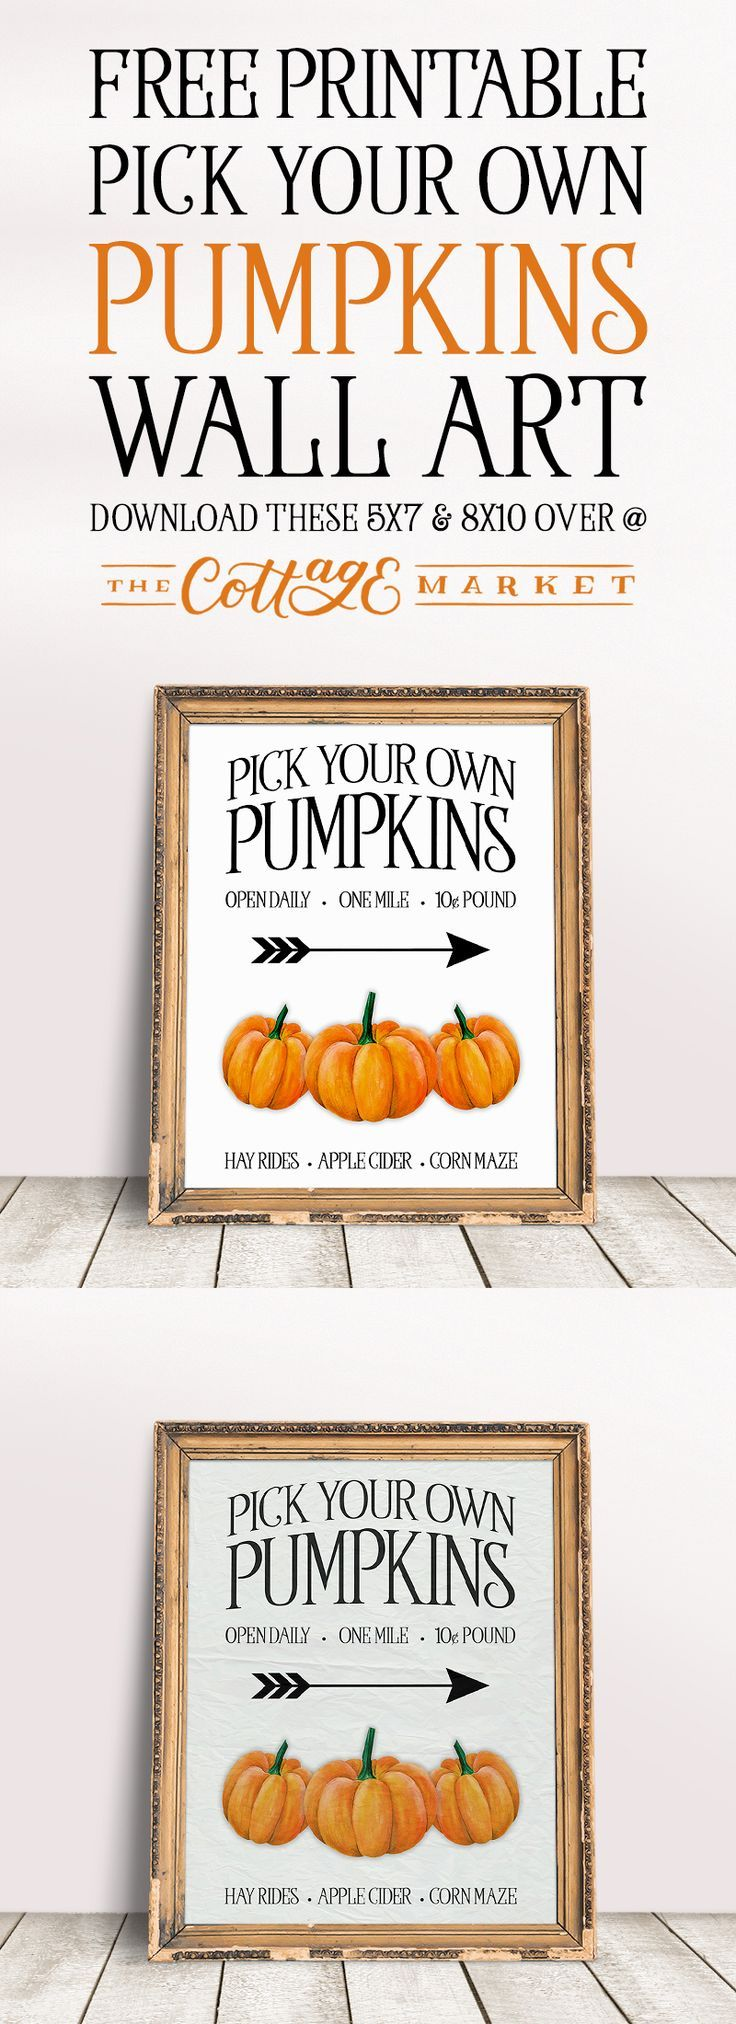 Free Printable Pick Your Own Pumpkins Wall Art | Pick your ...